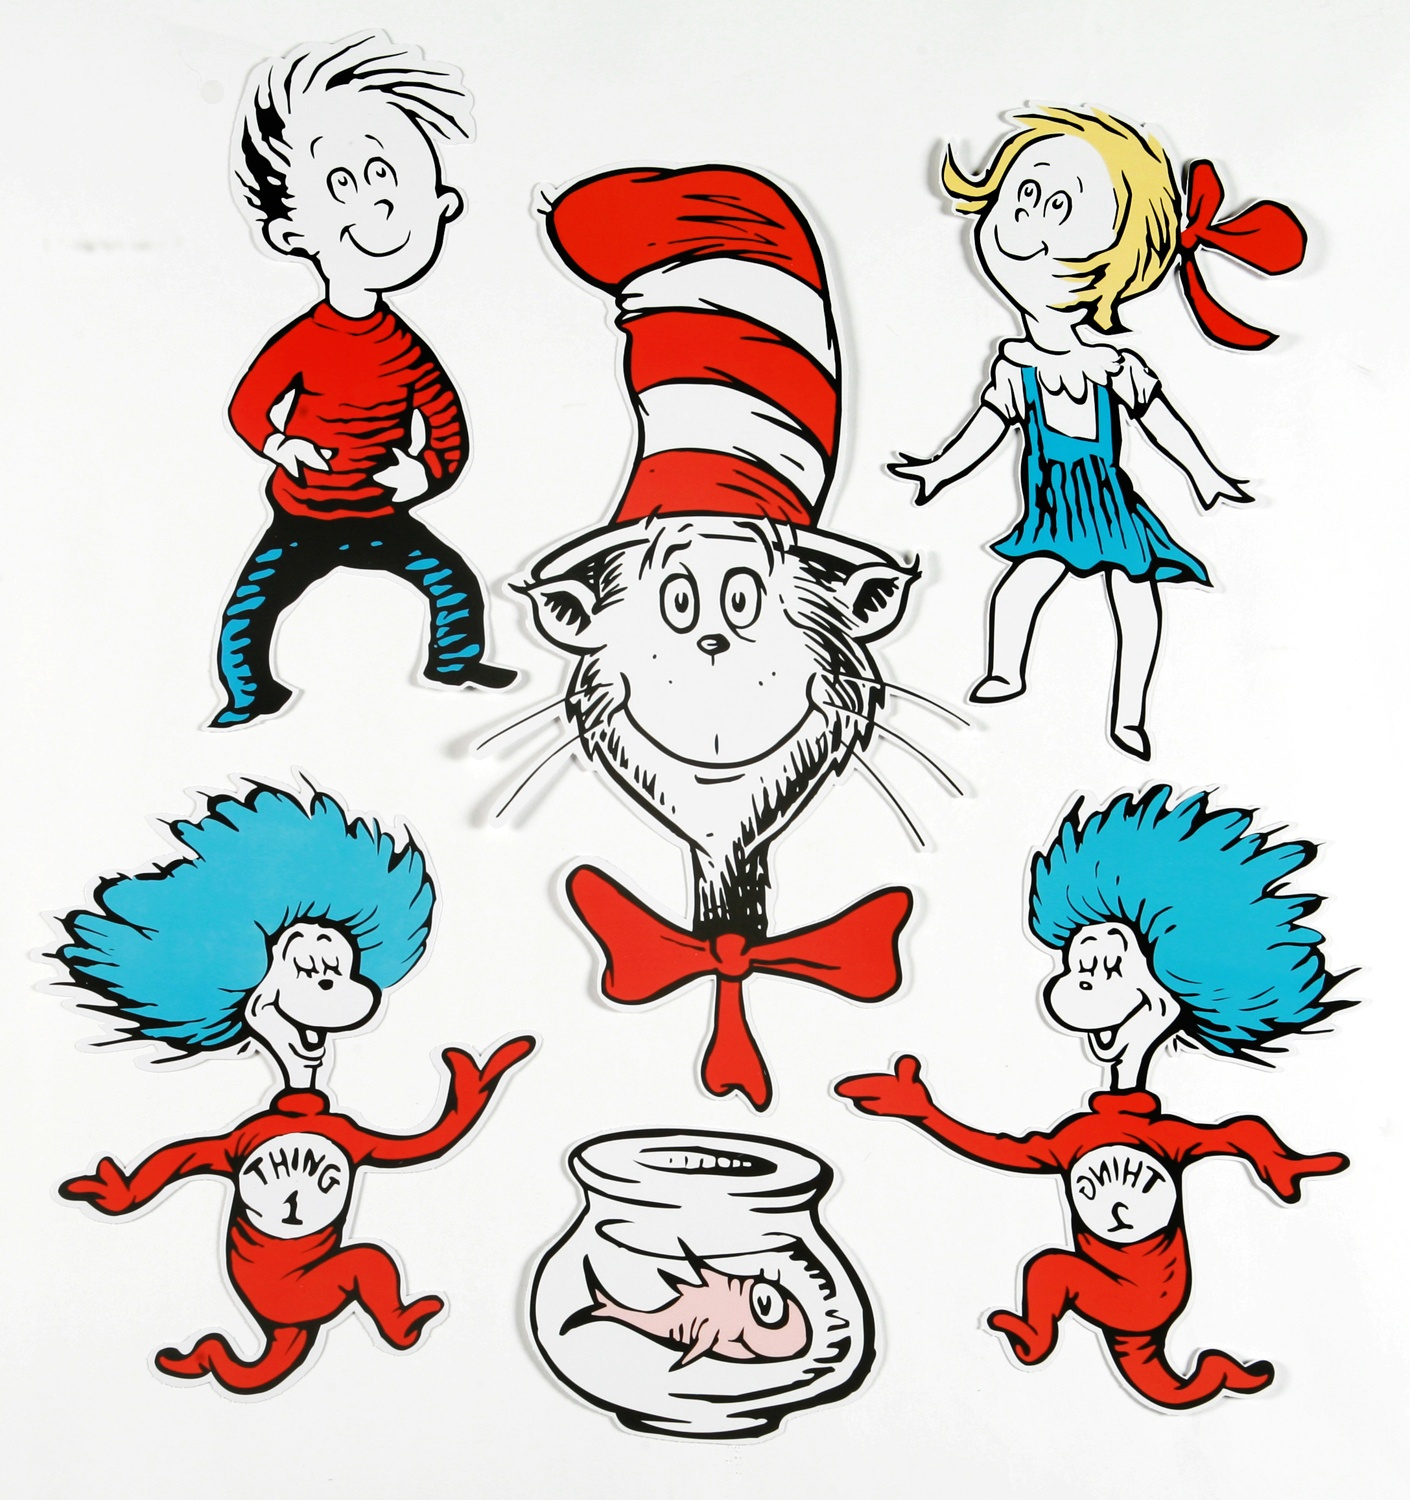 Dr Seuss Cat In The Hat Clipart | Free Download Best Dr Seuss Cat In - Free Printable Cat In The Hat Clip Art